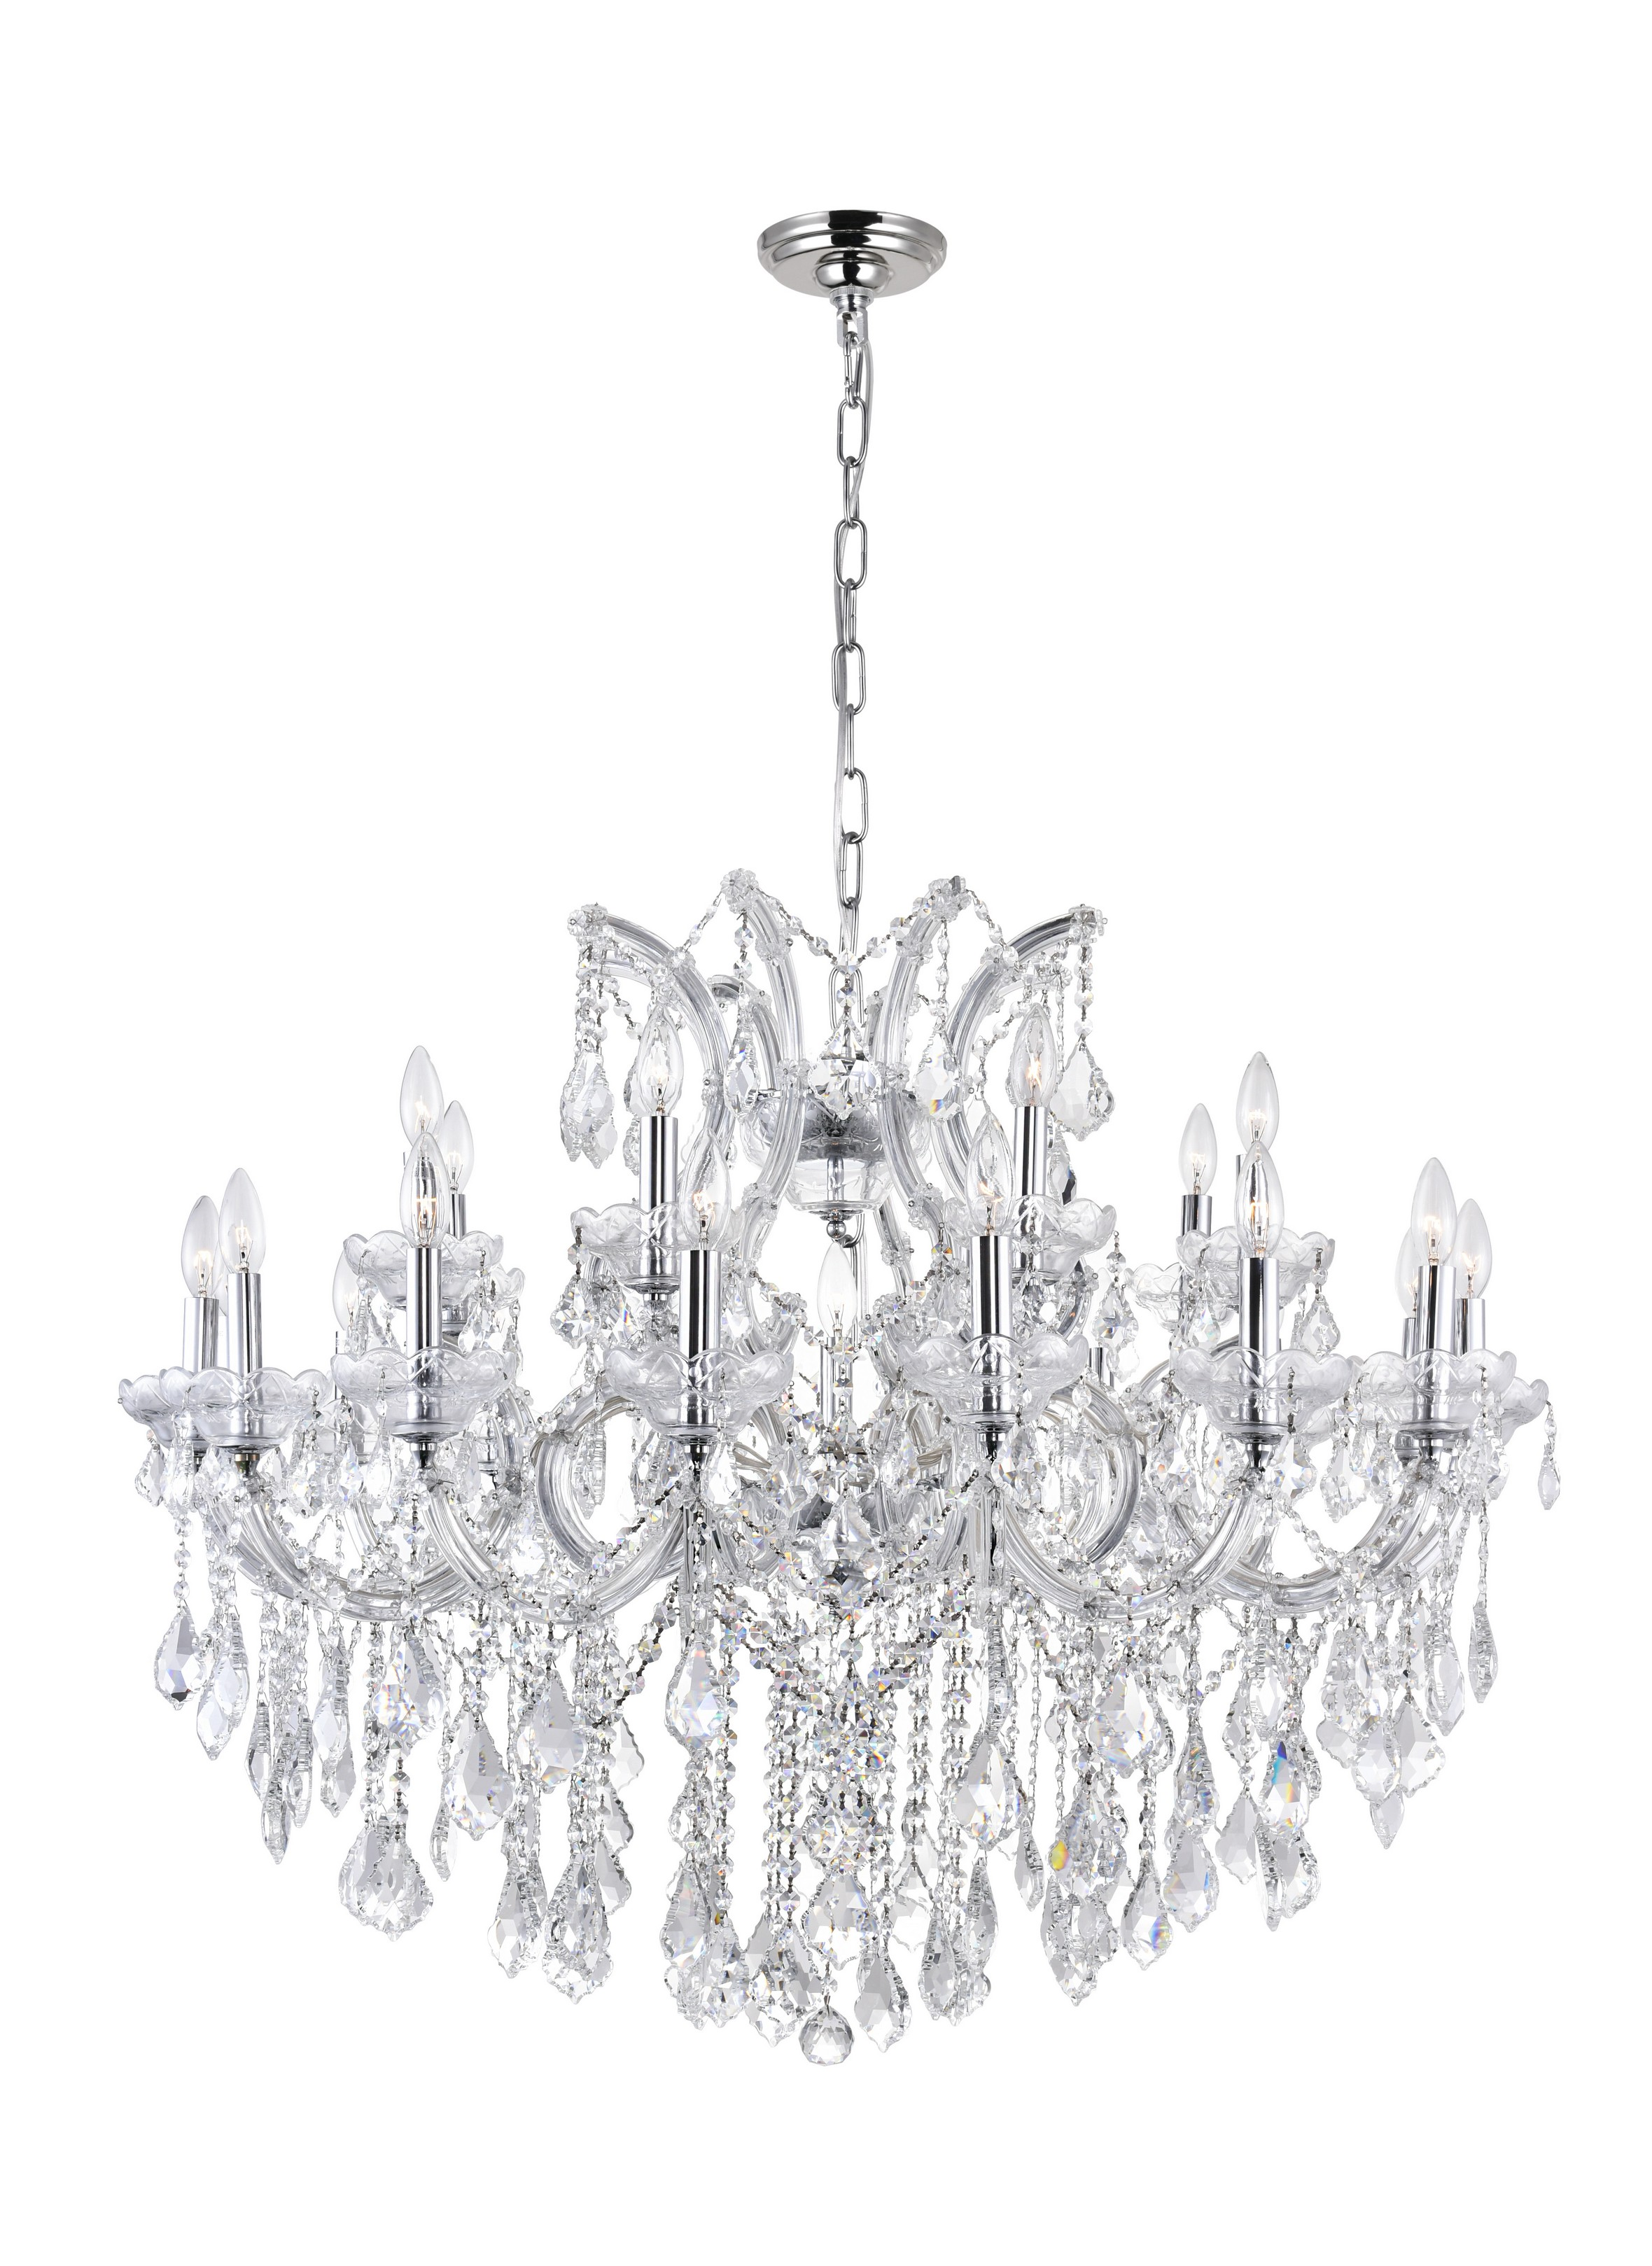 25 Light Up Chandelier with Chrome finish